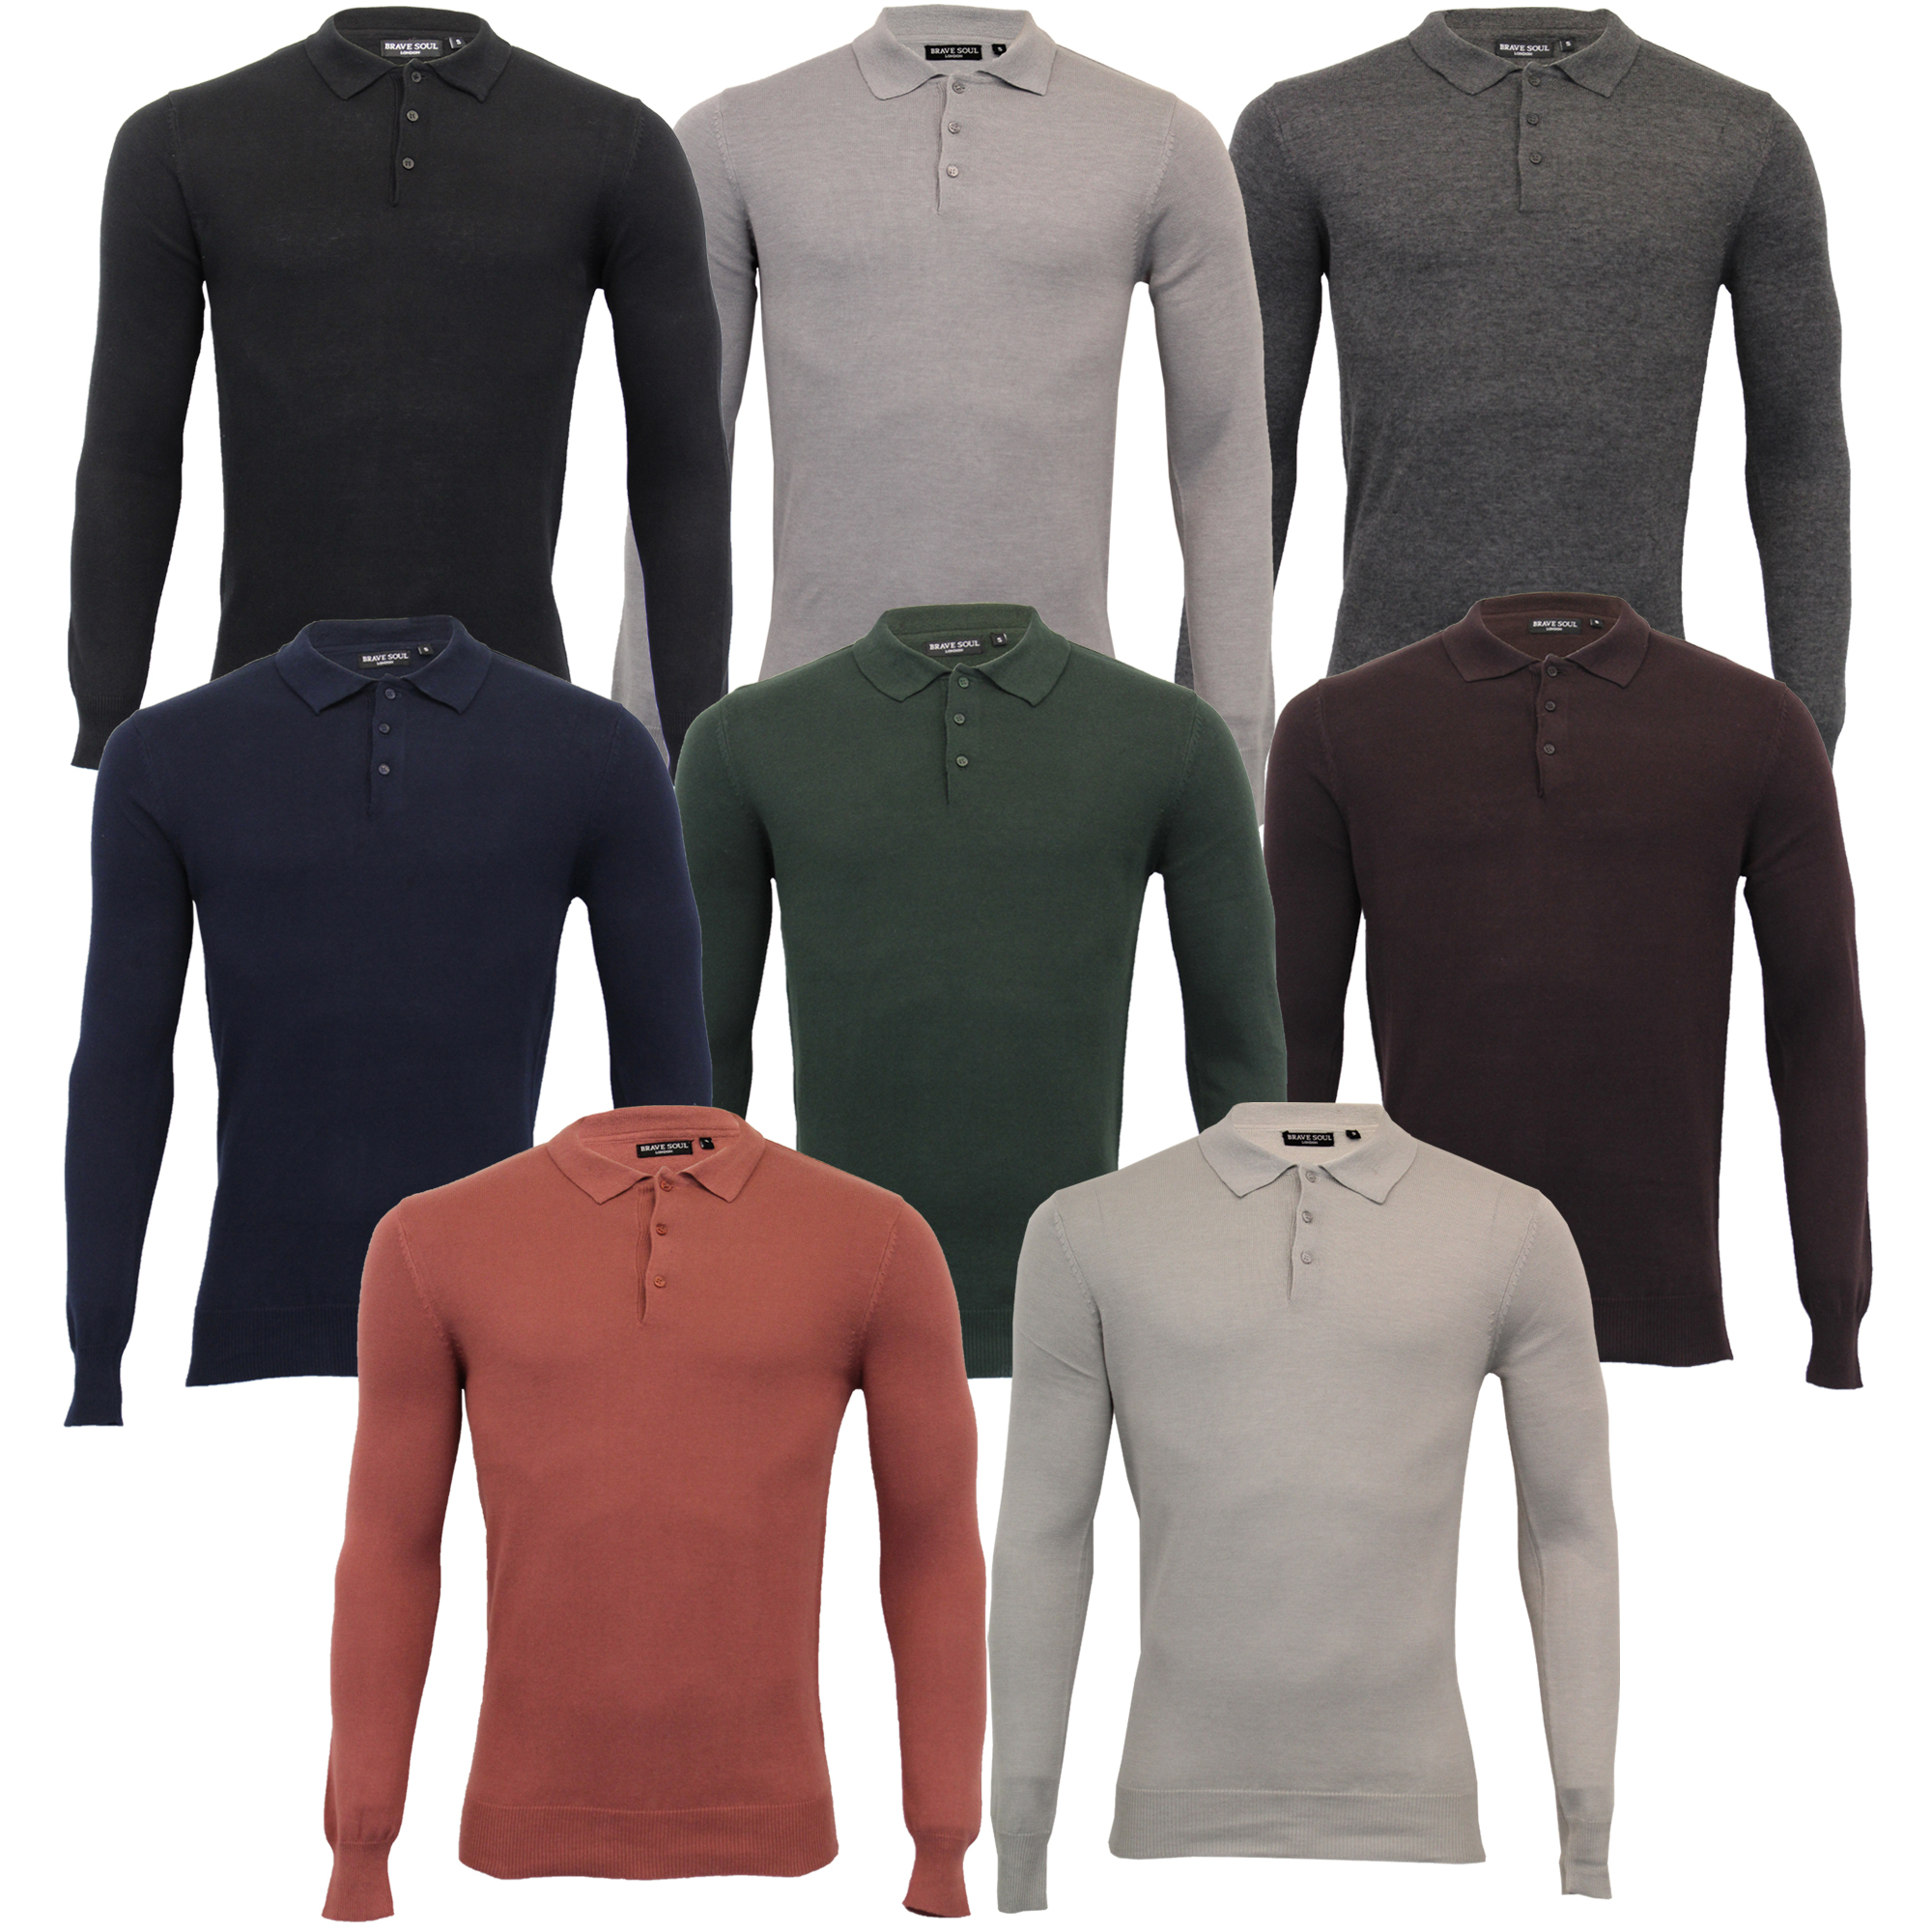 Mens-Knitted-Jumper-Brave-Soul-Polo-Top-Sweater-PLACKET-Pullover-Lightweight-New thumbnail 3